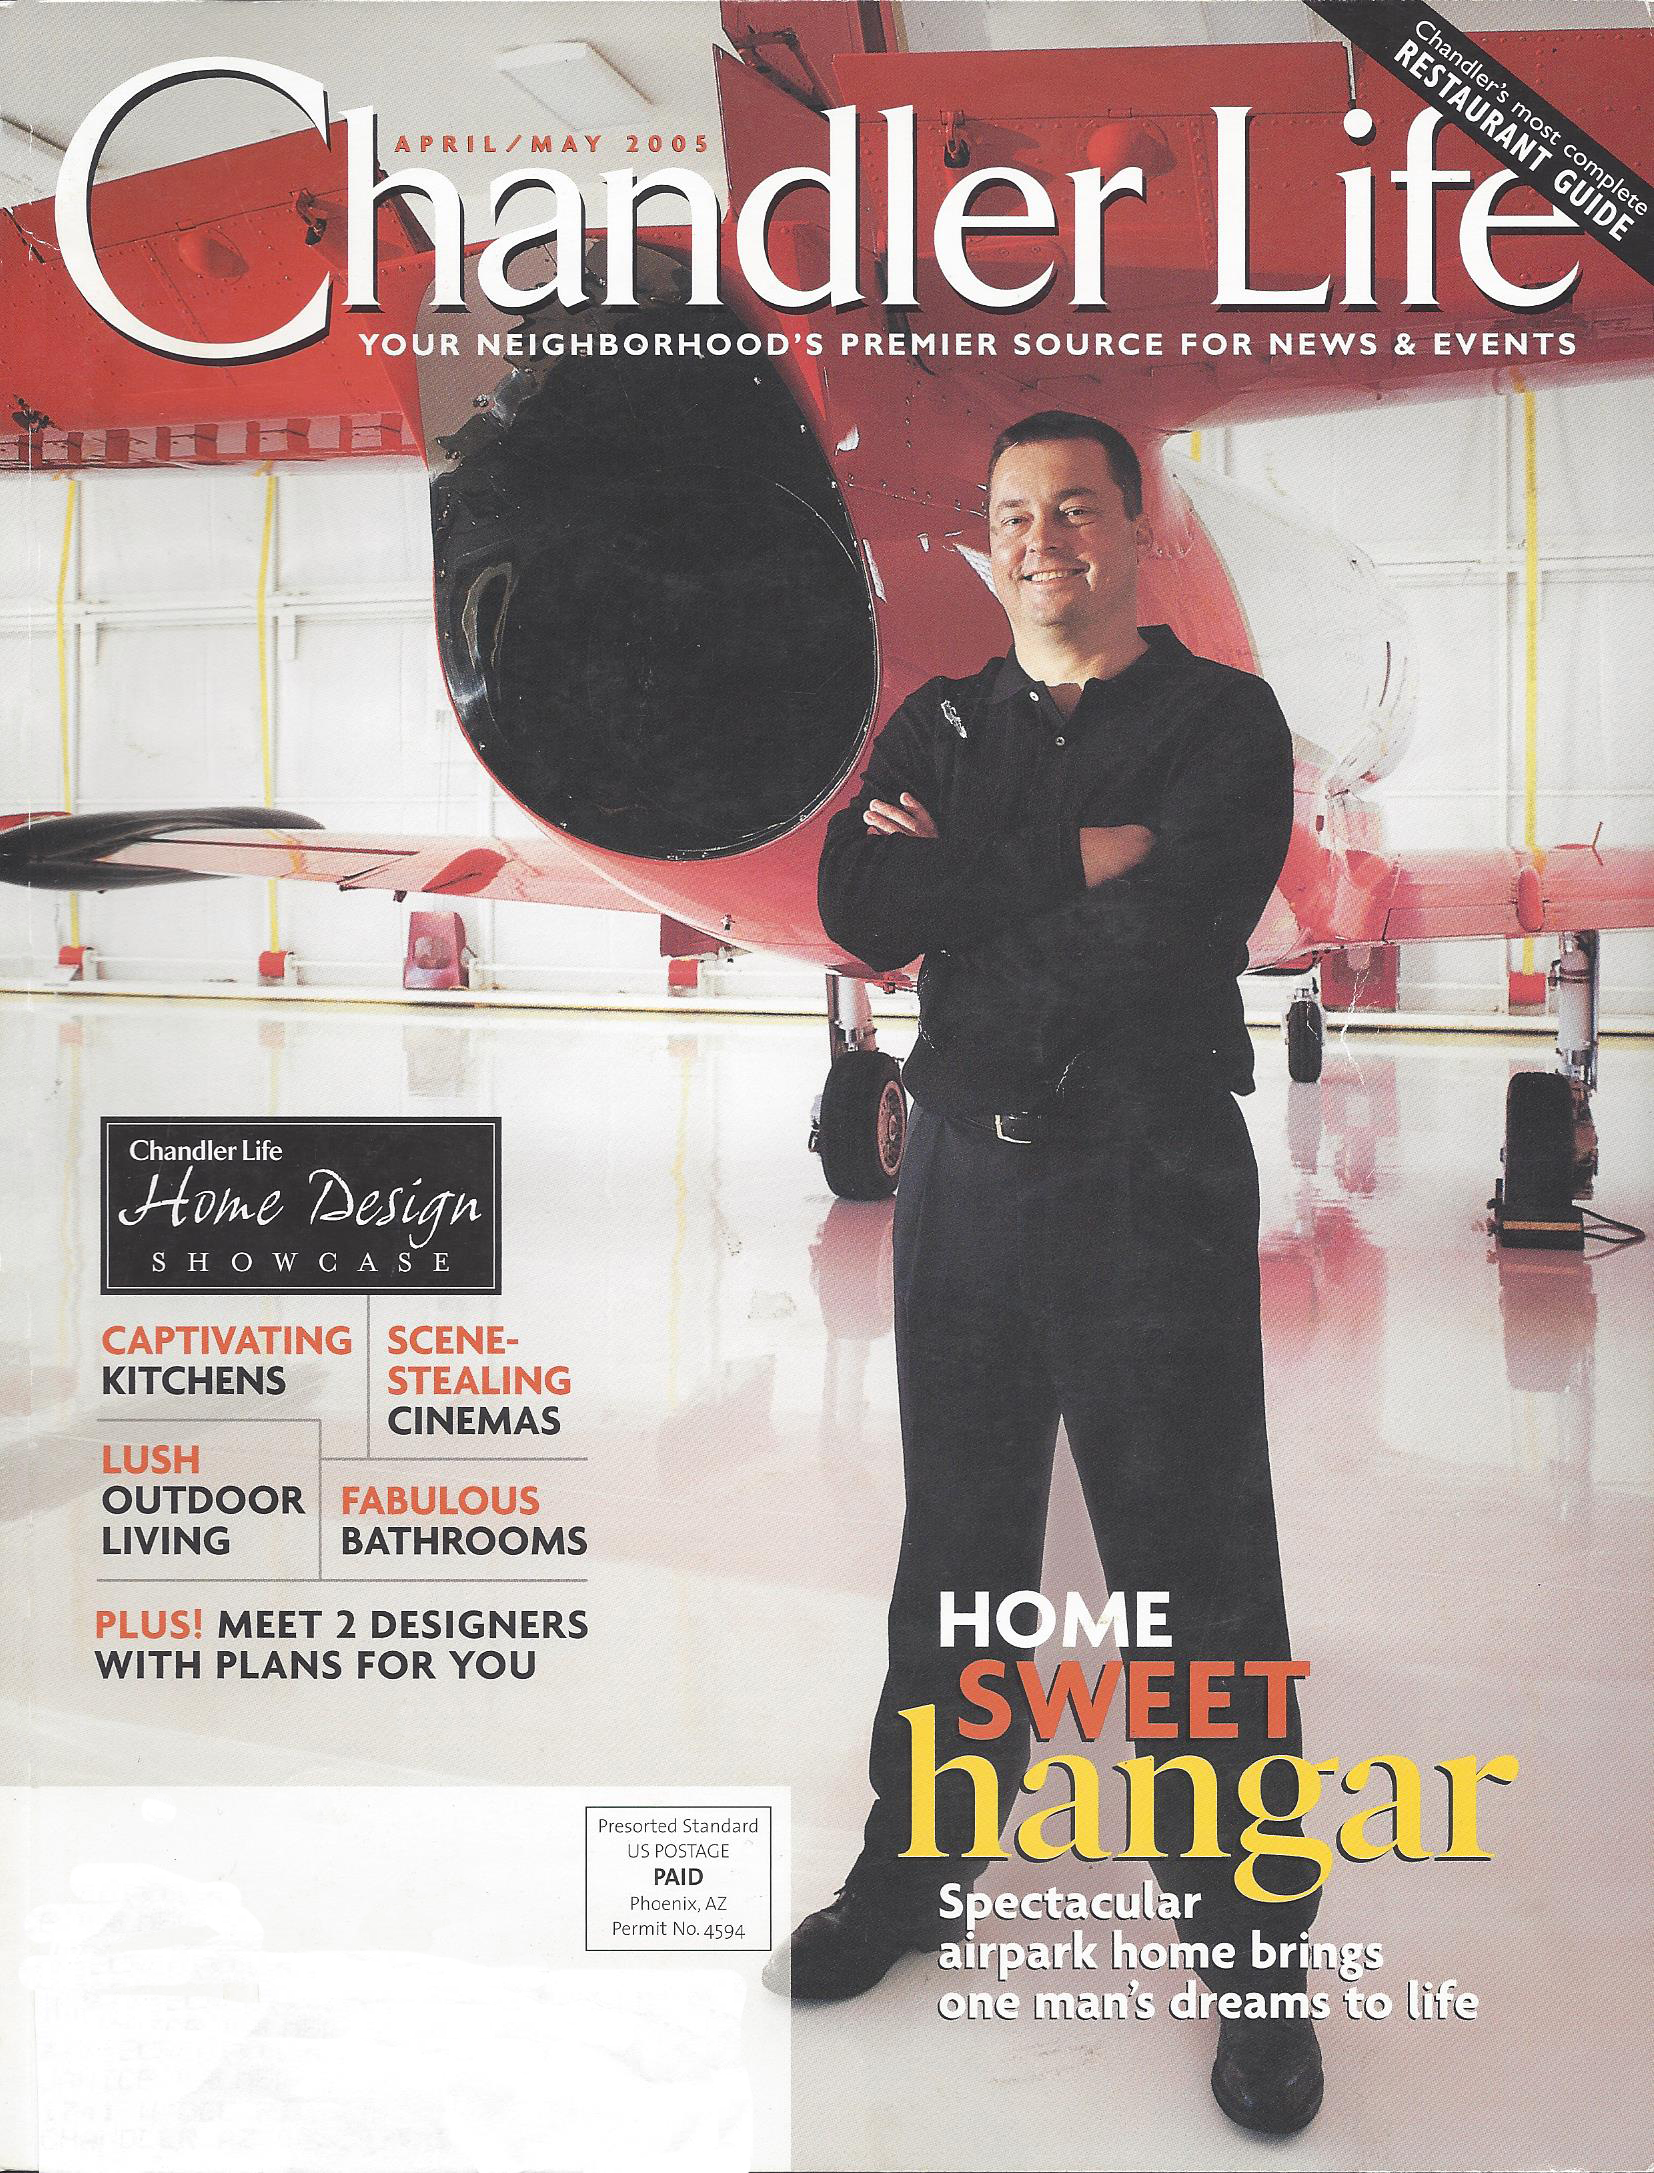 Chandler Life Magazine April & May 2005